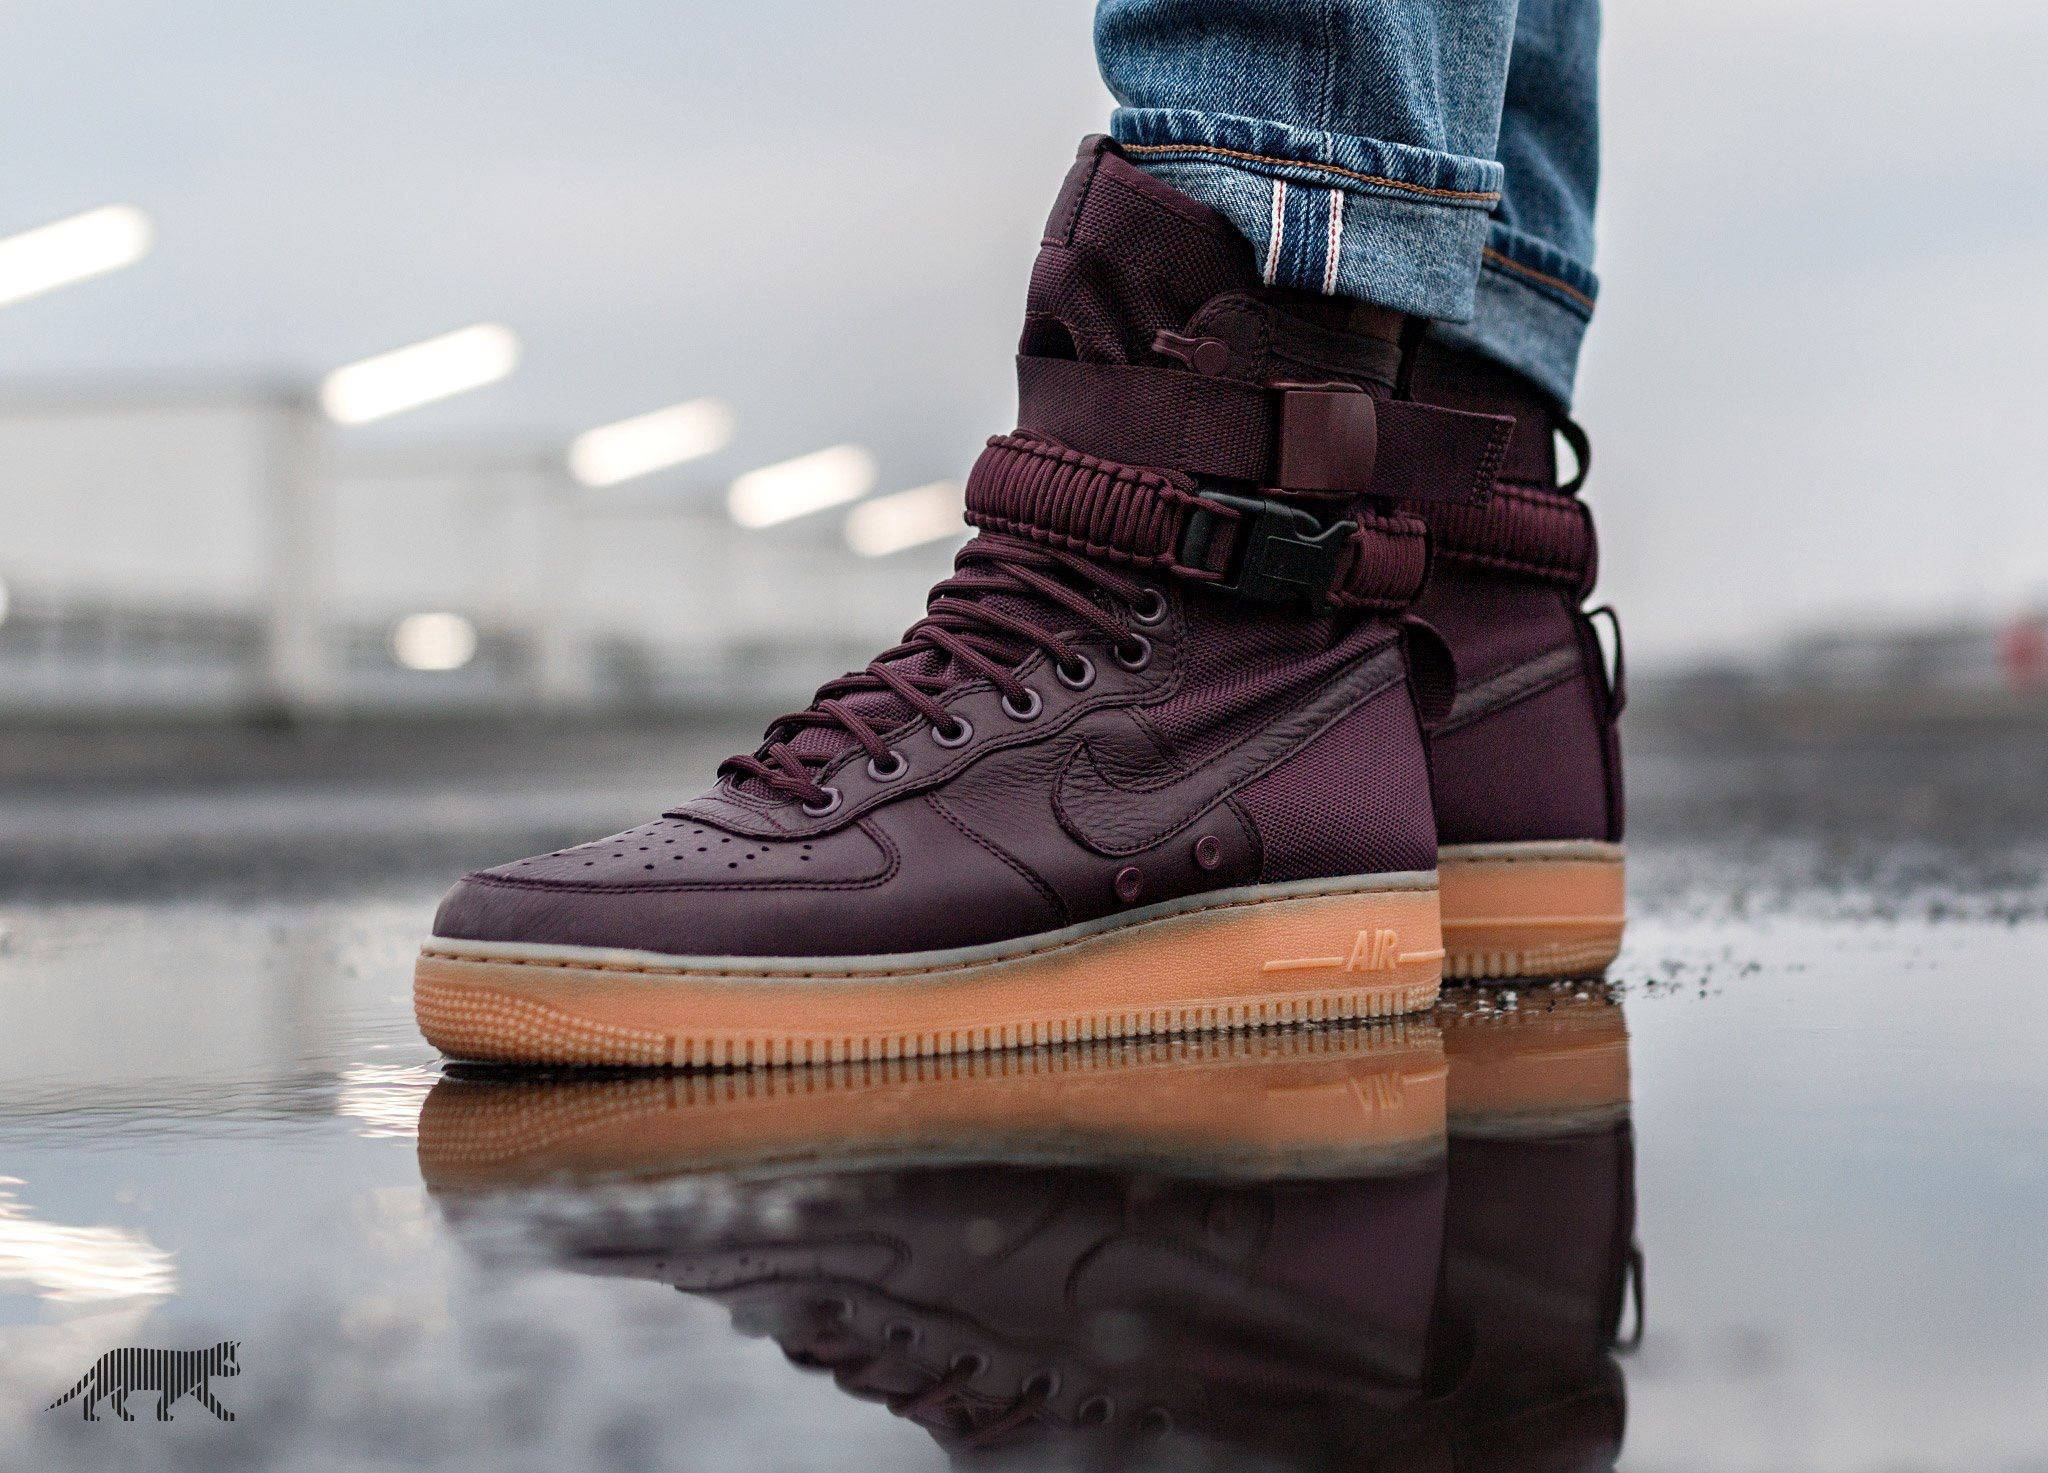 Nike SF Air Force 1 Mid | Sneakers fashion, Kicks shoes